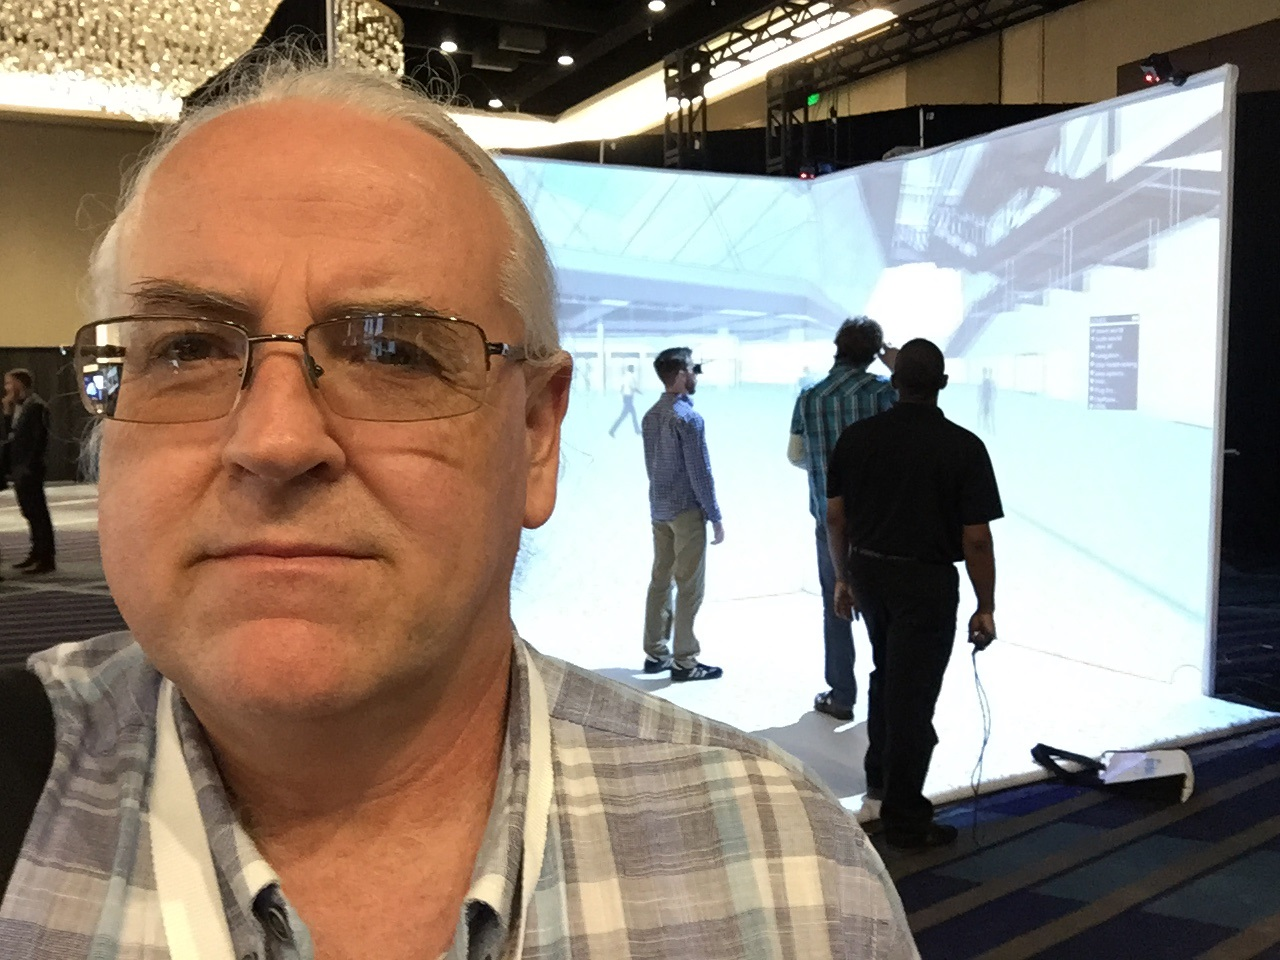 Dr. Webster with VR demo in background at SPAR 3D Conference